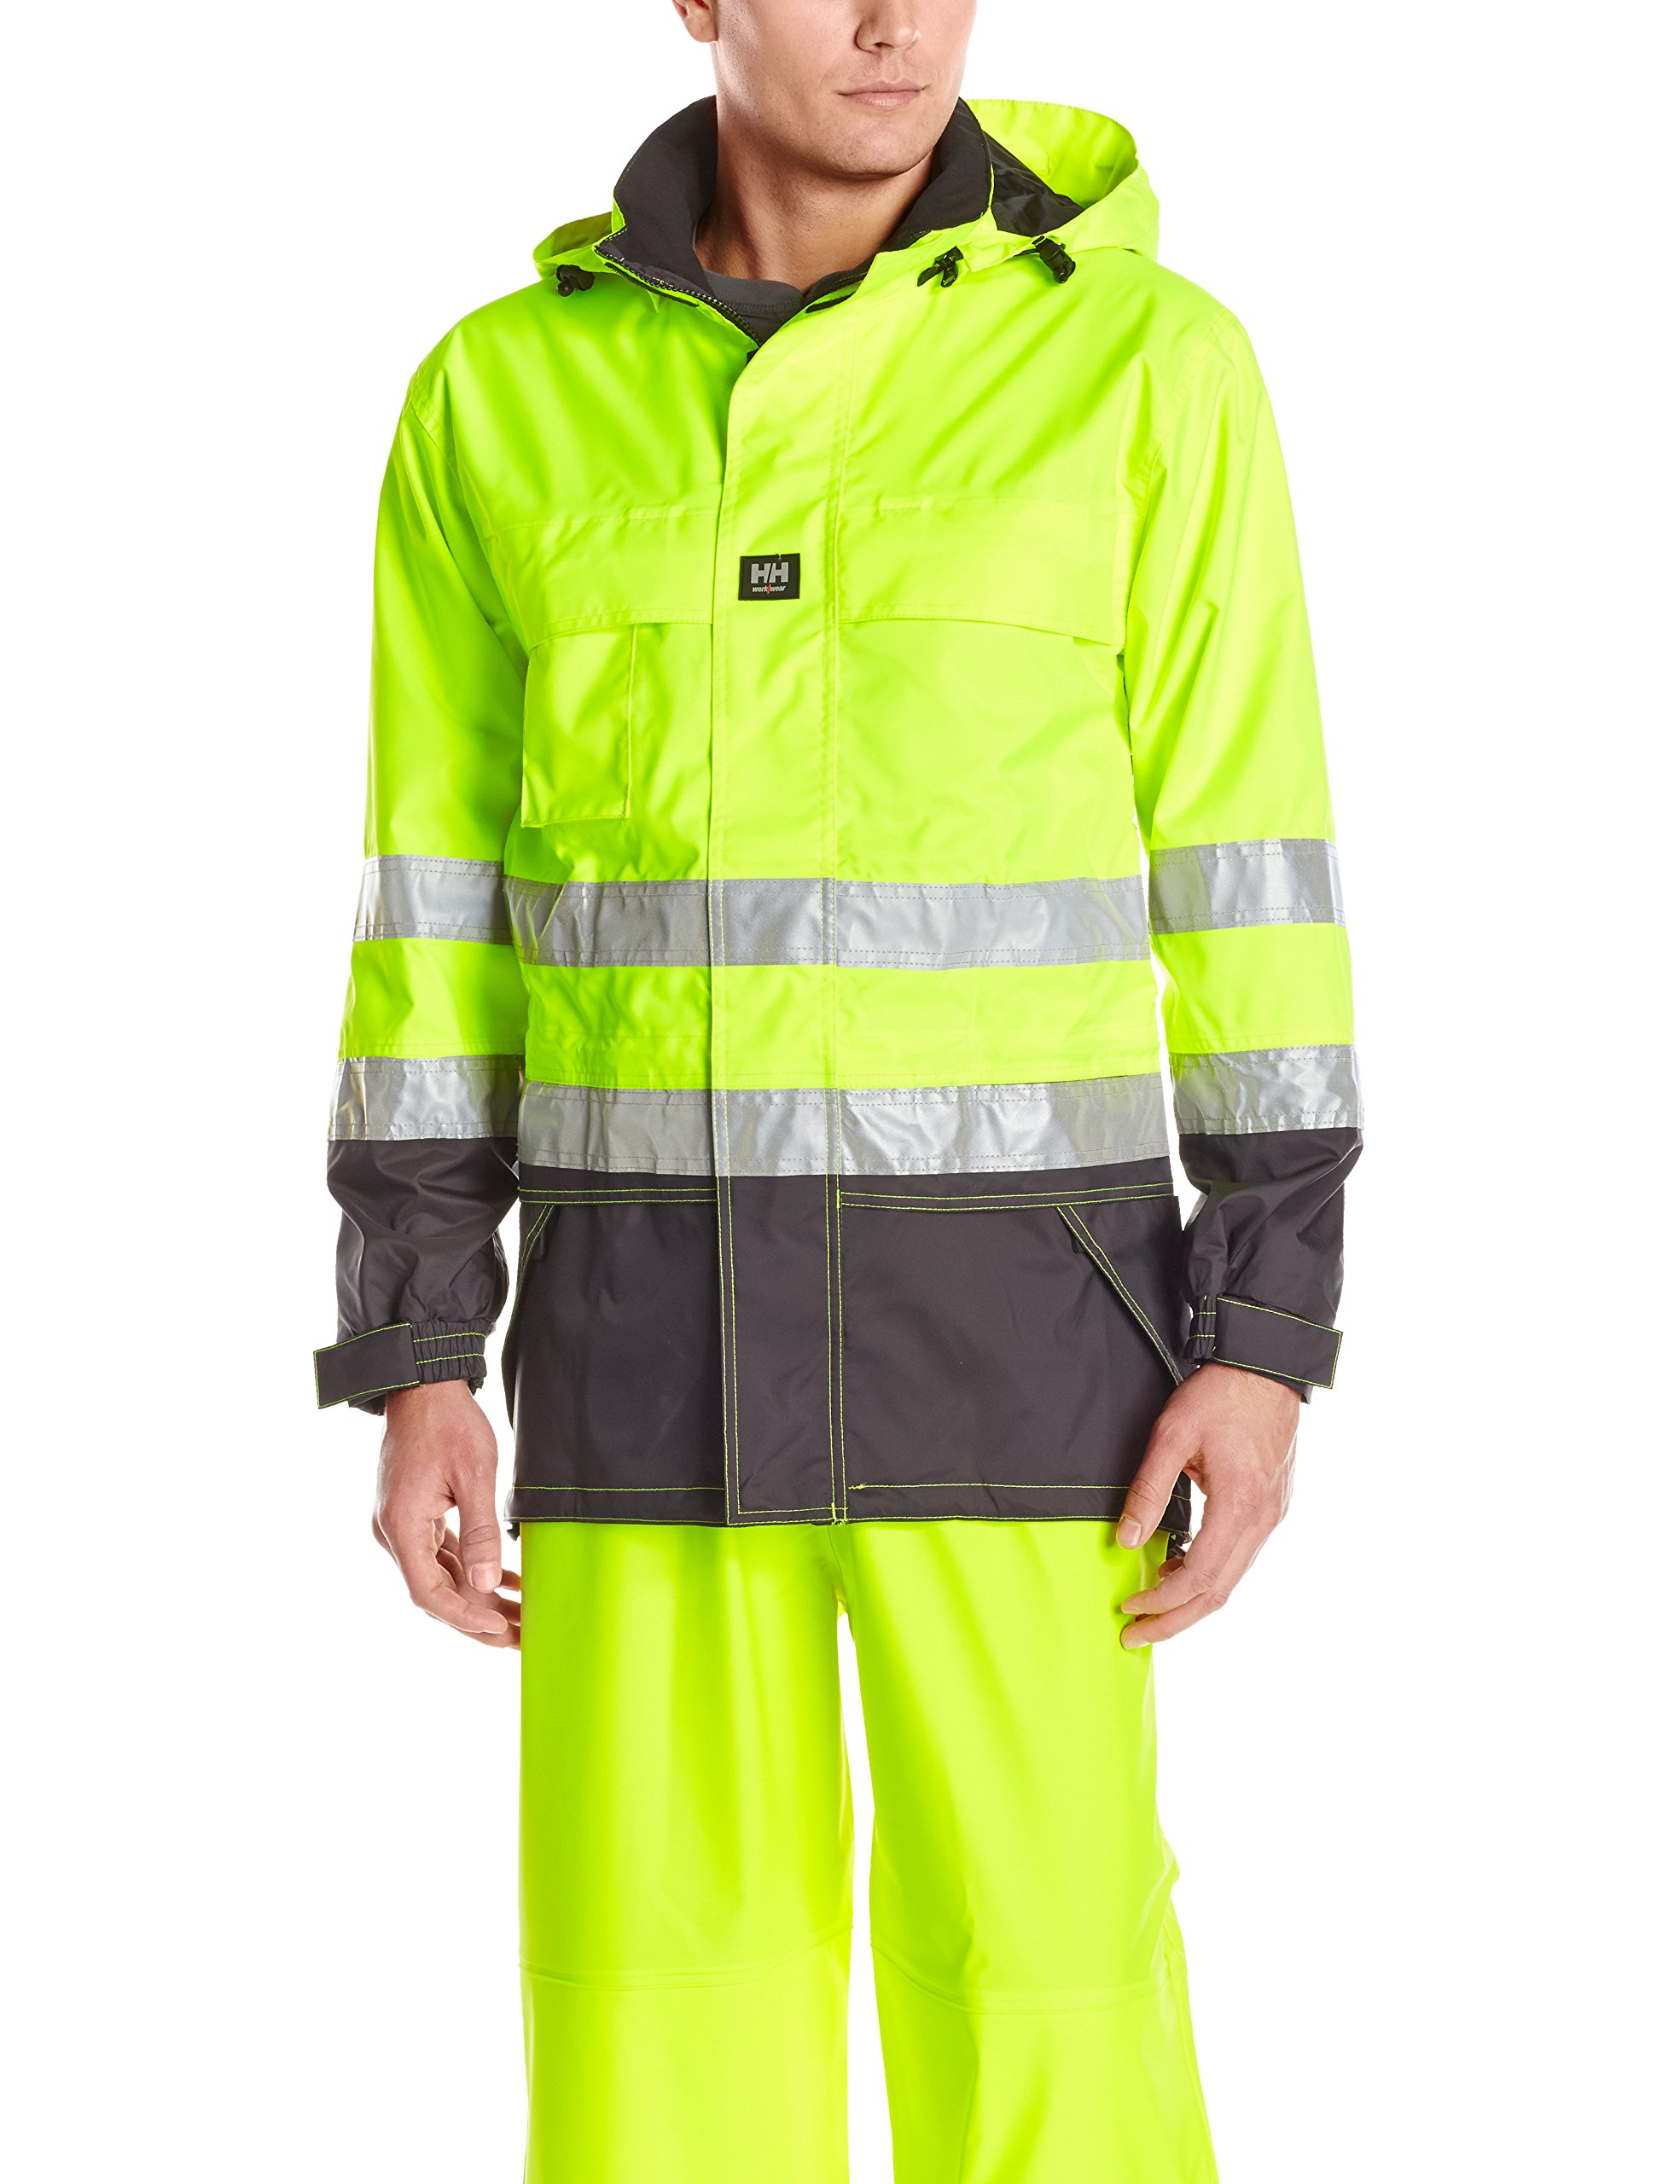 Helly Hansen Workwear Potsdam High Visibility Jacket, En471 Yellow/Charcoal, M by Helly Hansen